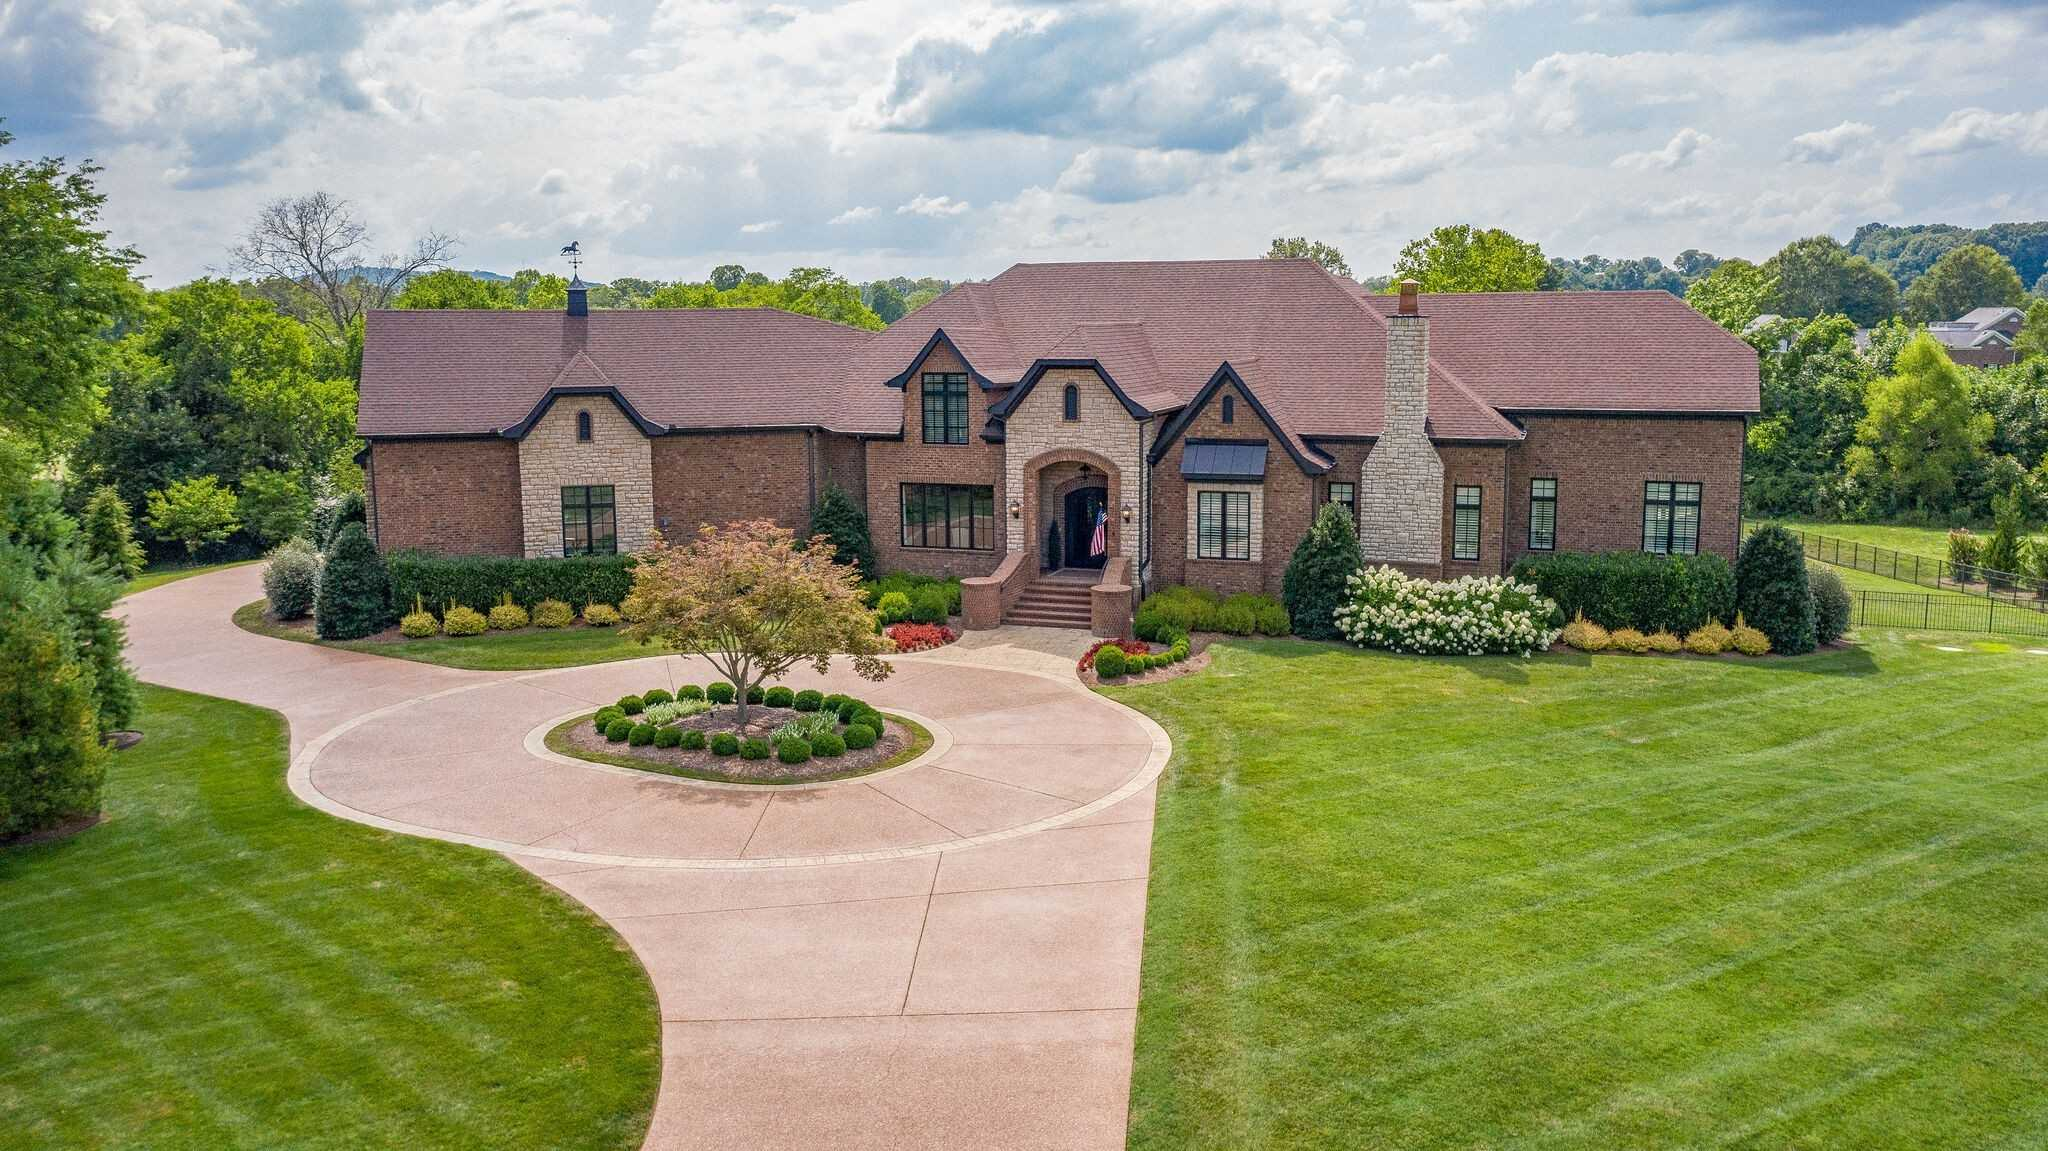 $2,699,000 - 4Br/5Ba -  for Sale in Rosemont, Franklin